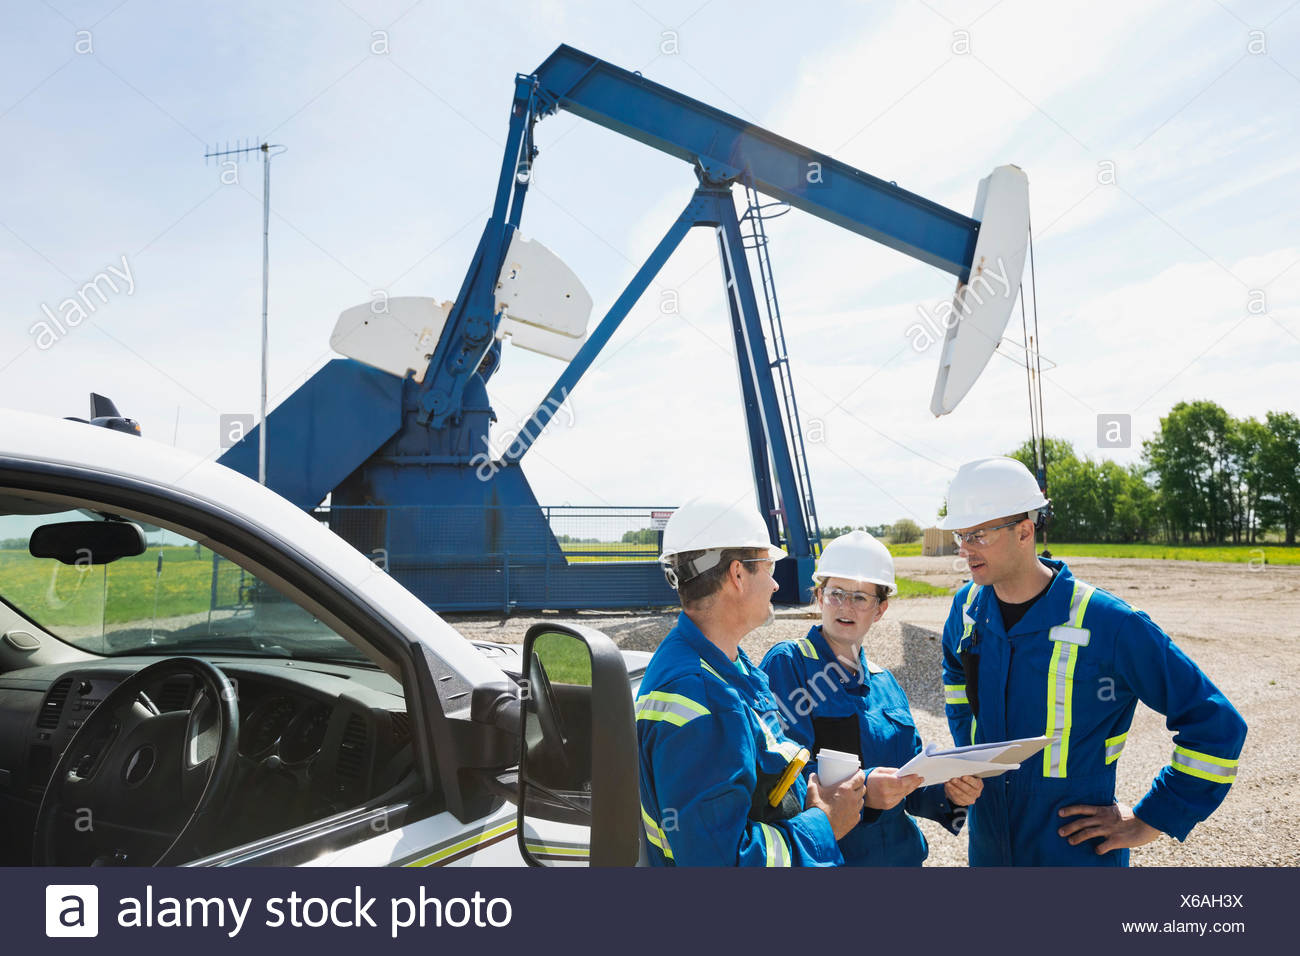 Workers meeting near oil well - Stock Image